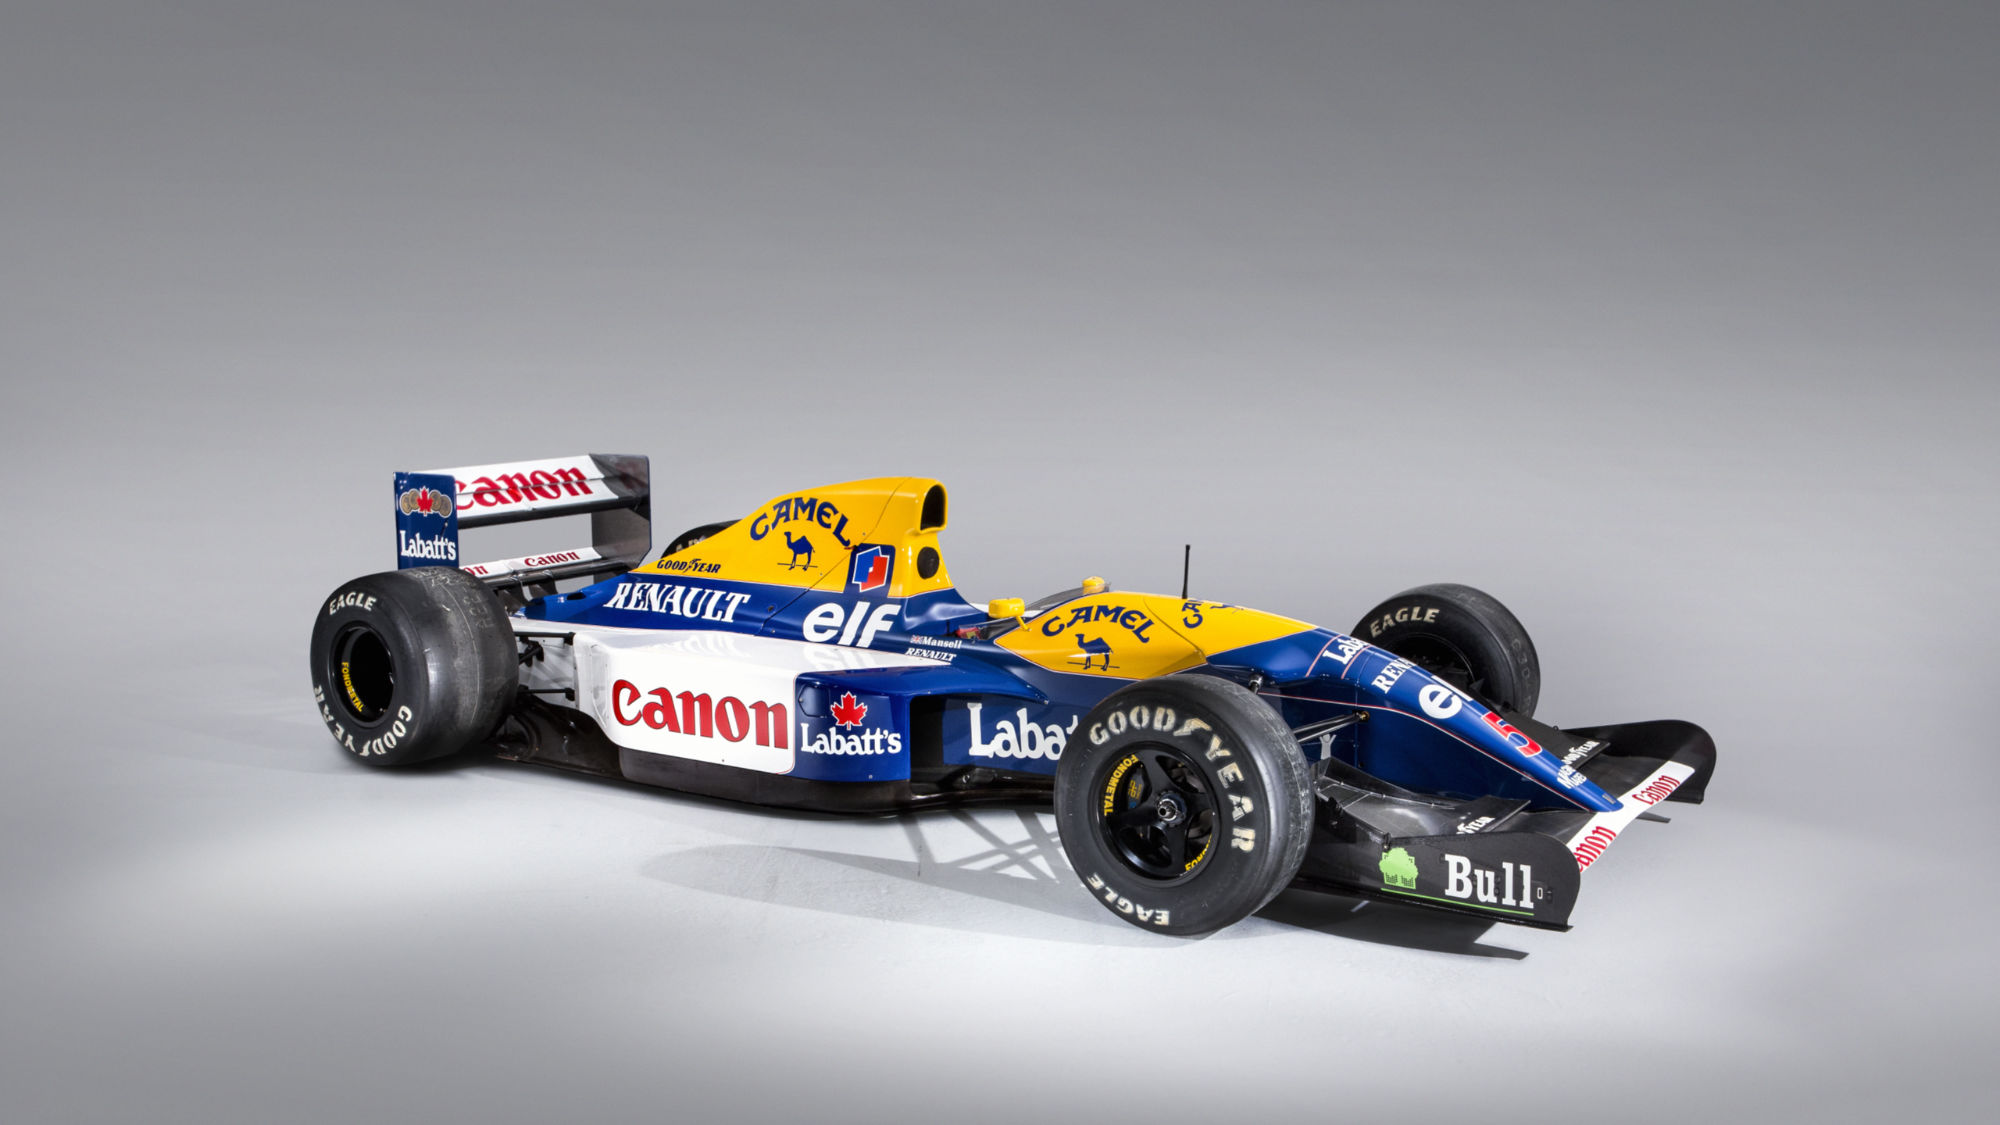 Nigel Mansell's 1992 Williams-Renault FW14B Formula 1 car © Bonhams